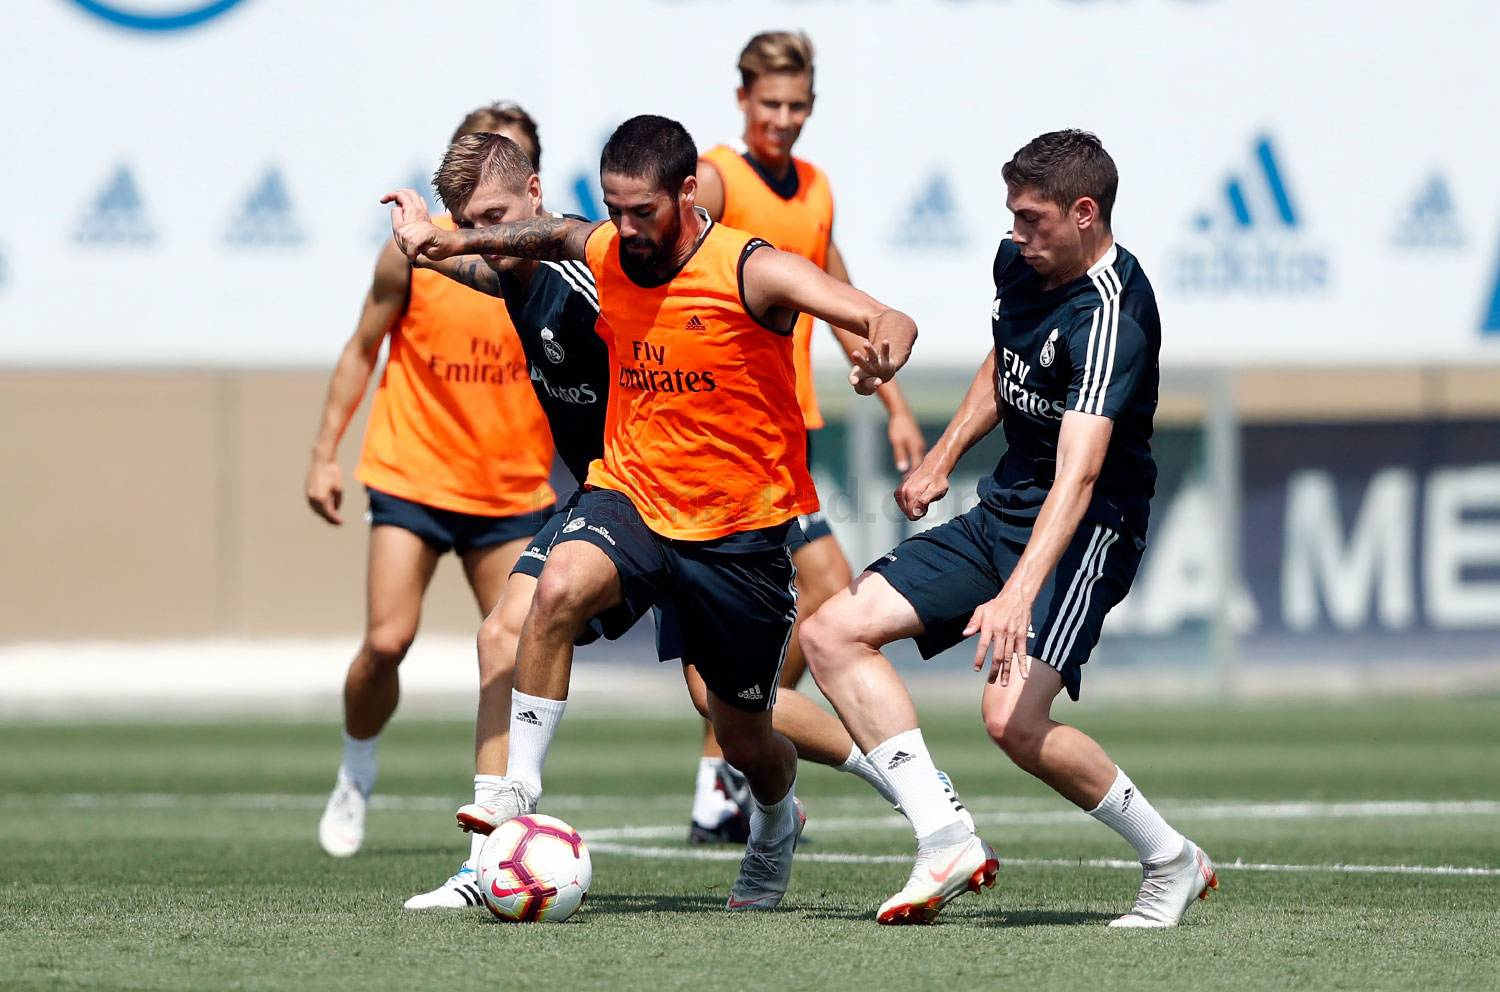 Real Madrid - Entrenamiento del Real Madrid - 23-08-2018